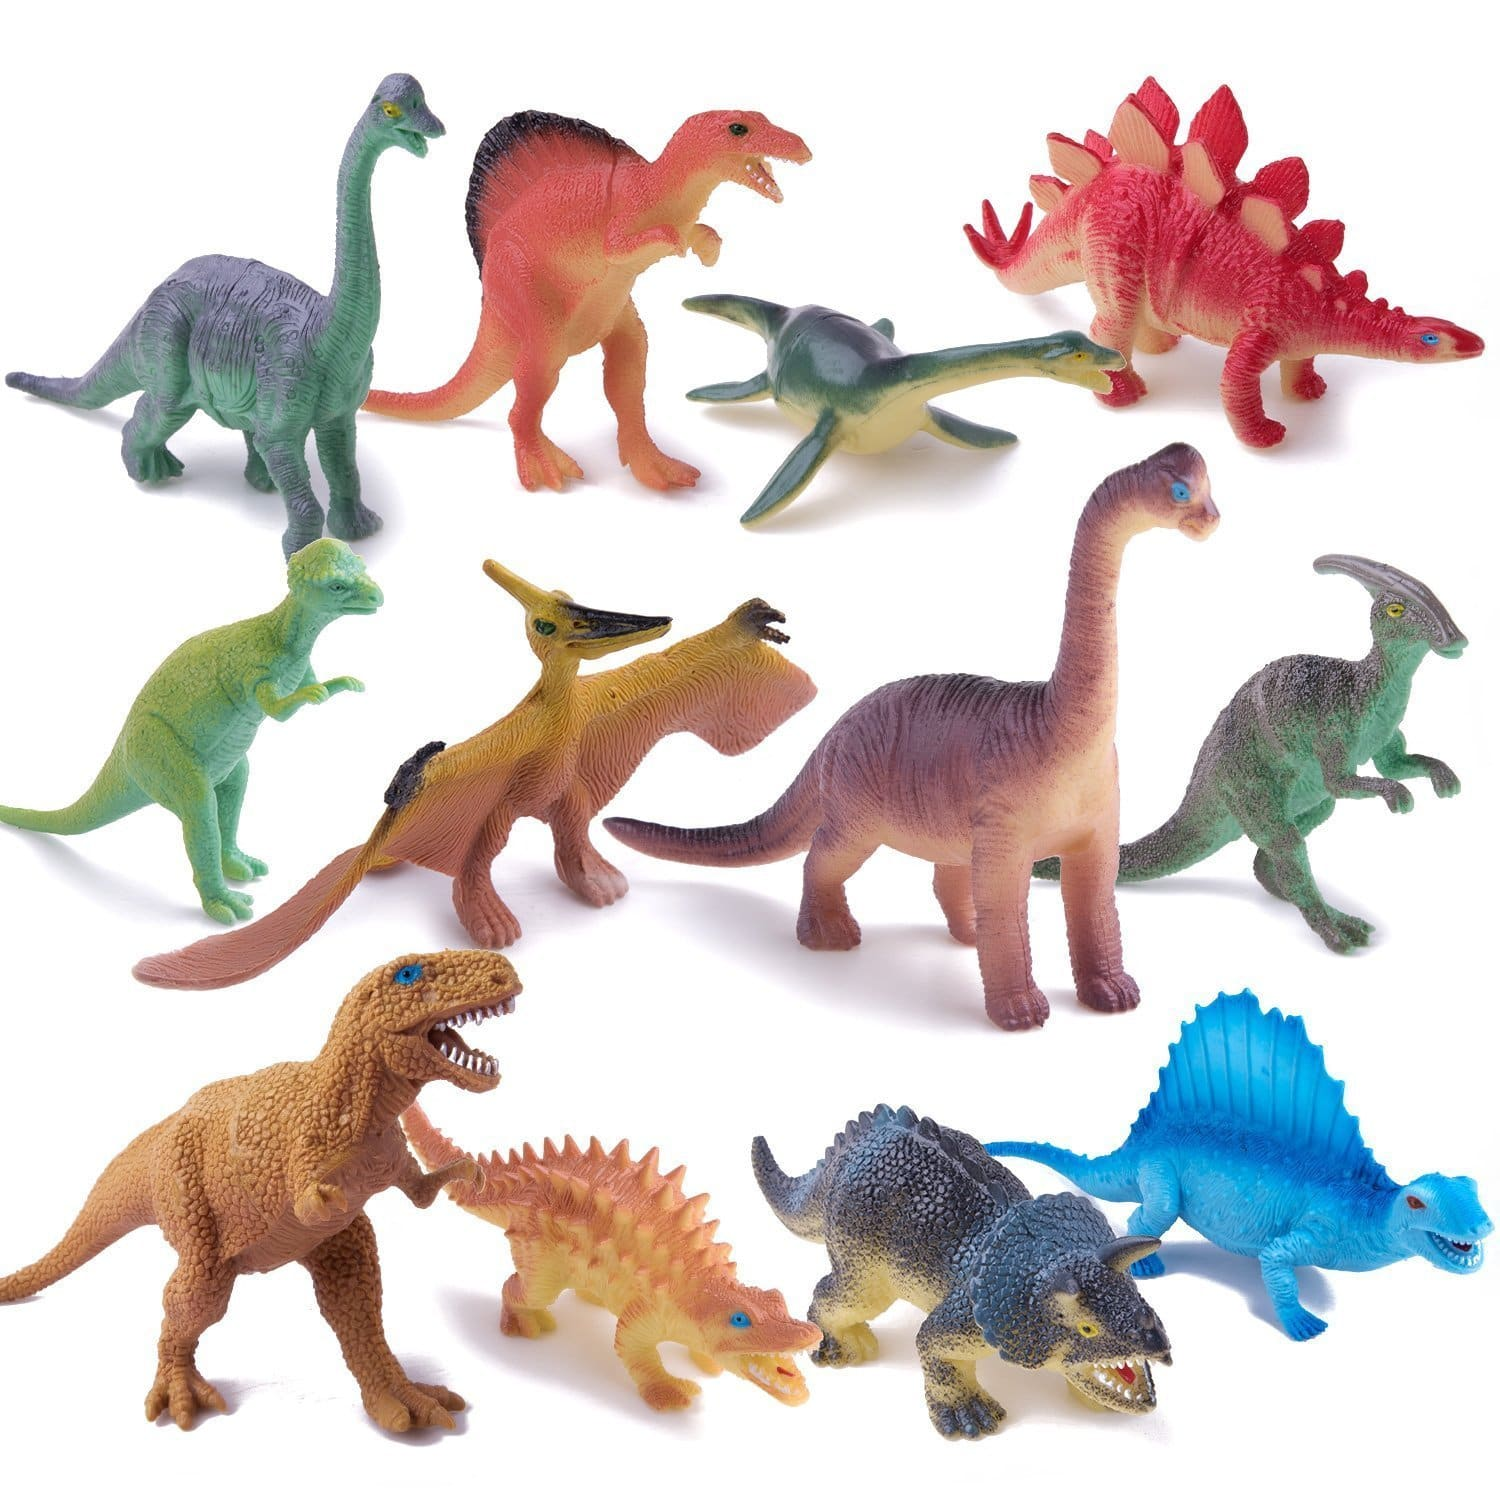 12 pieces dinosaur toys with carrying case - $11.99 (40% off)